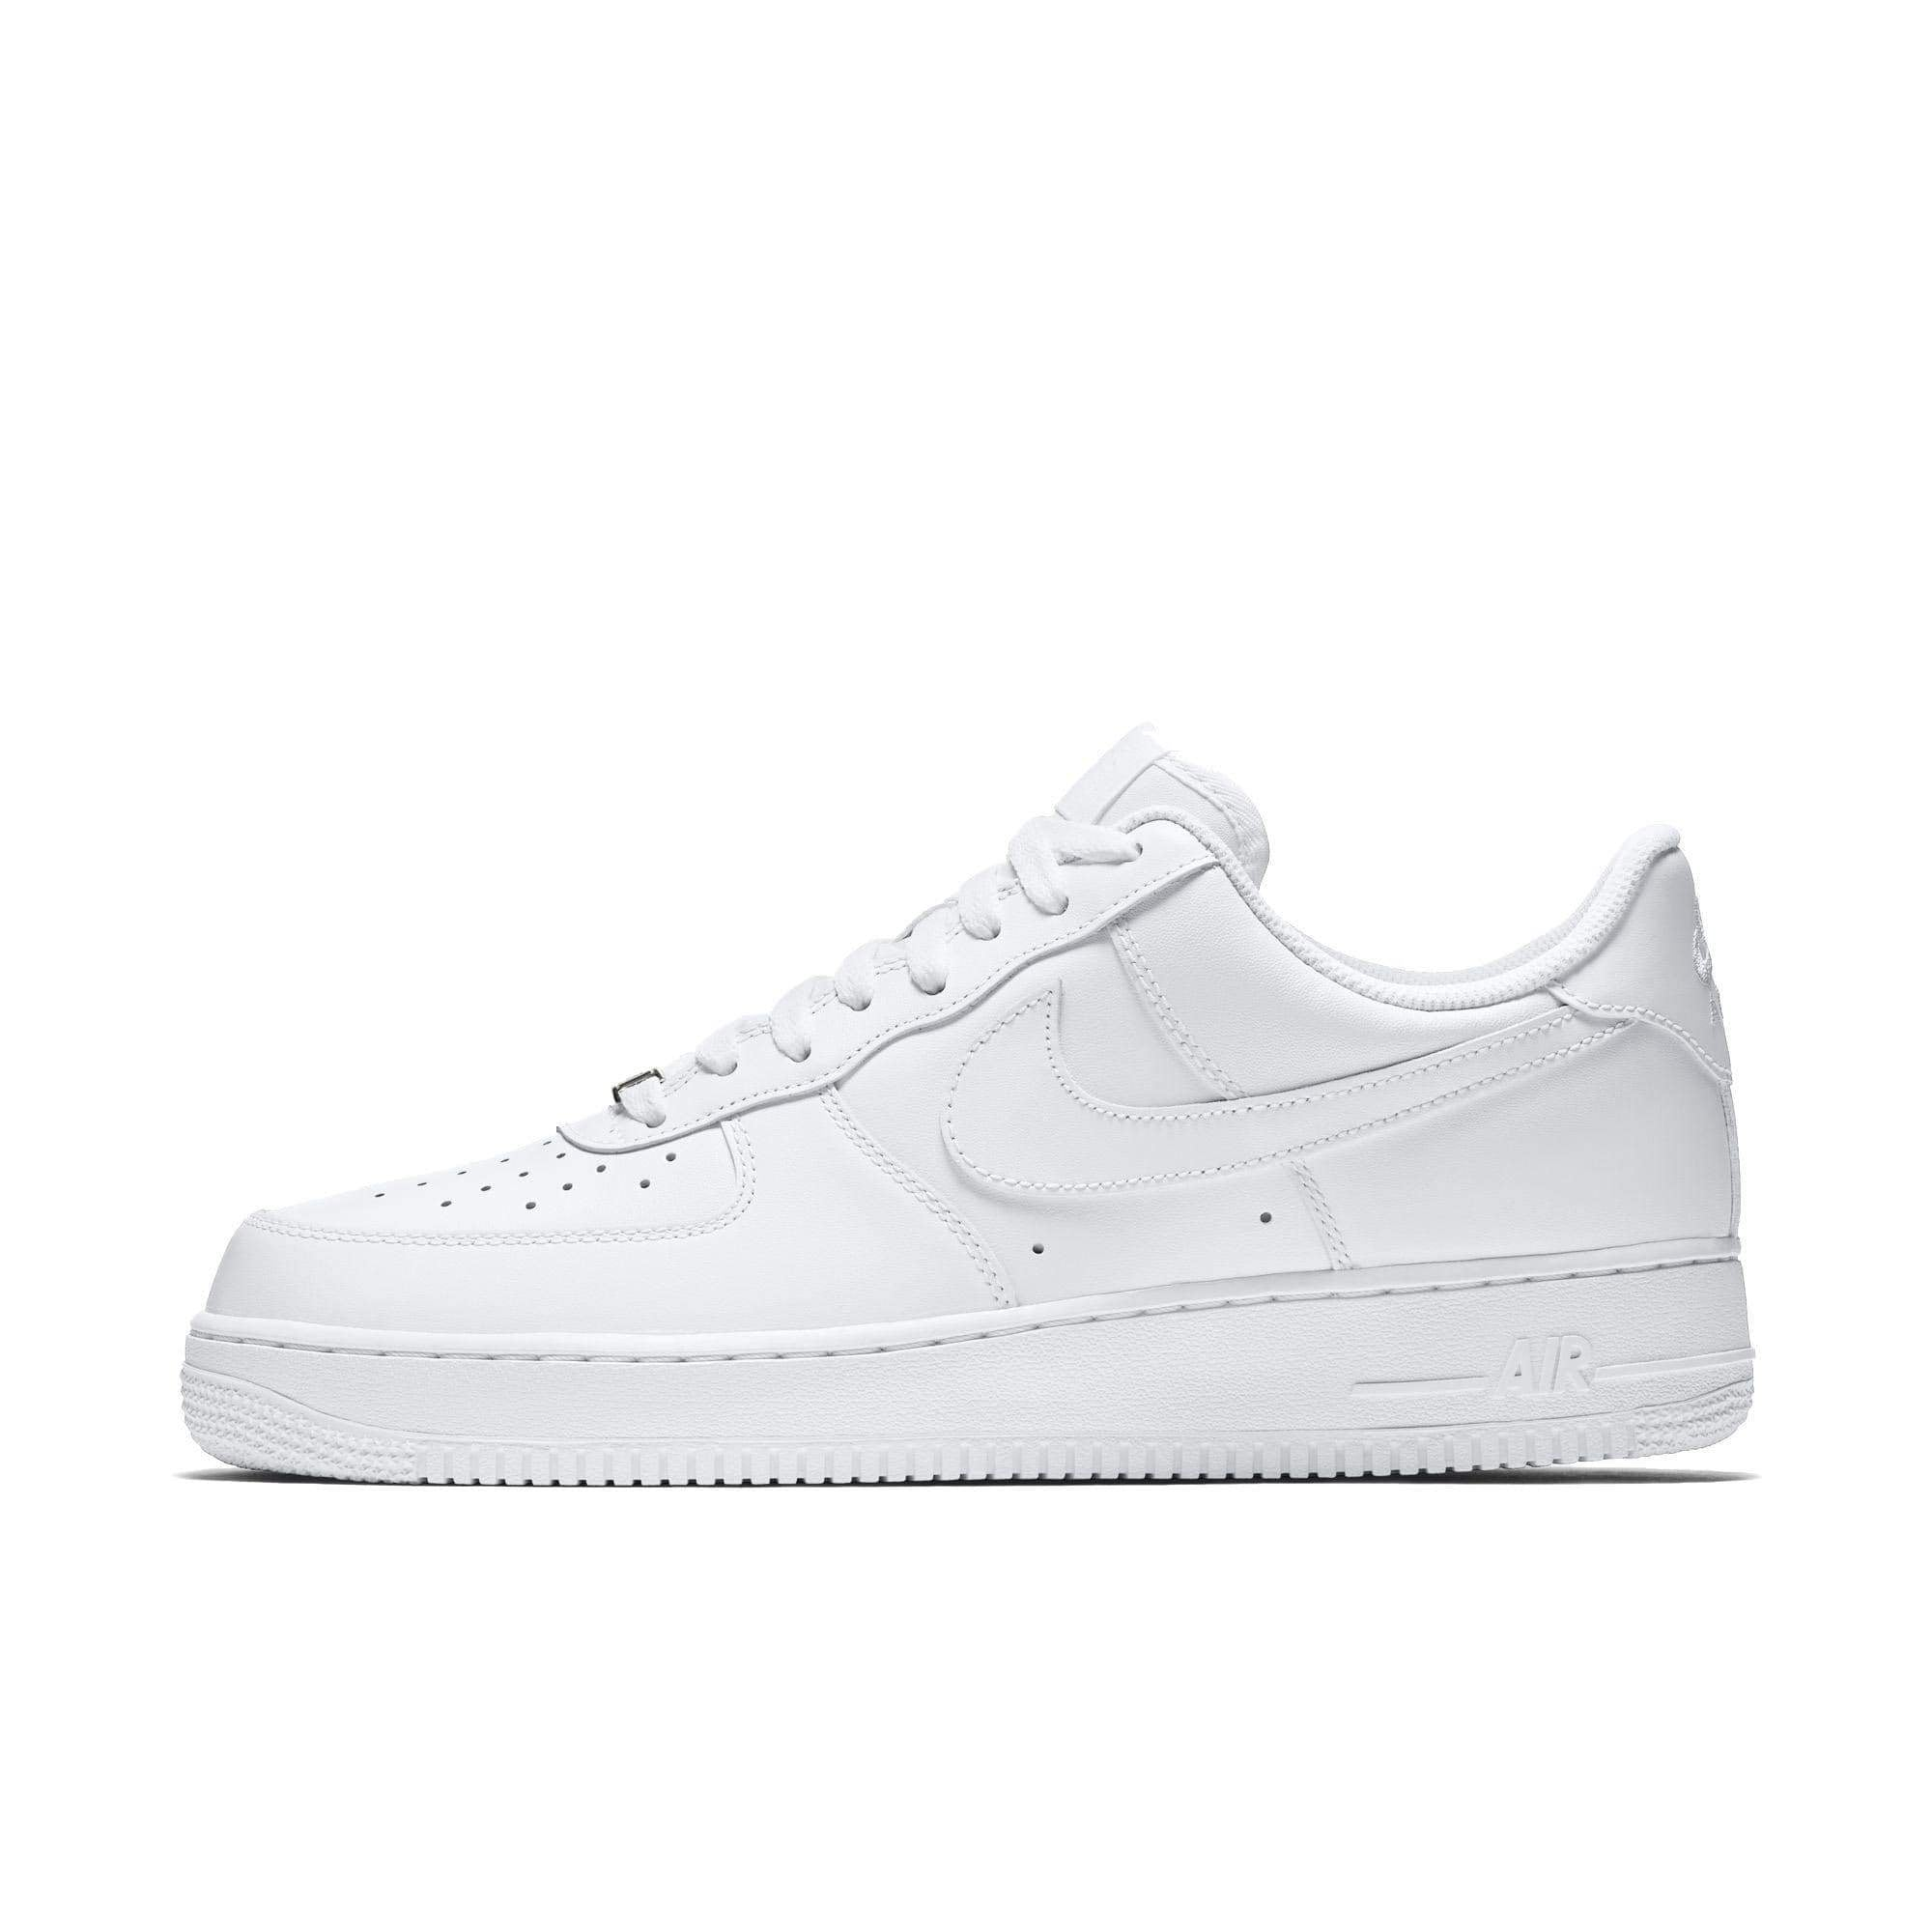 Italians Made 315122-111 / 40.5 Nike Air Force 1 '07 New Arrival Men Skateboarding Shoes Anti-Slippery Sports Shoes Hard-Wearing Outdoor Men Sneakers #315122